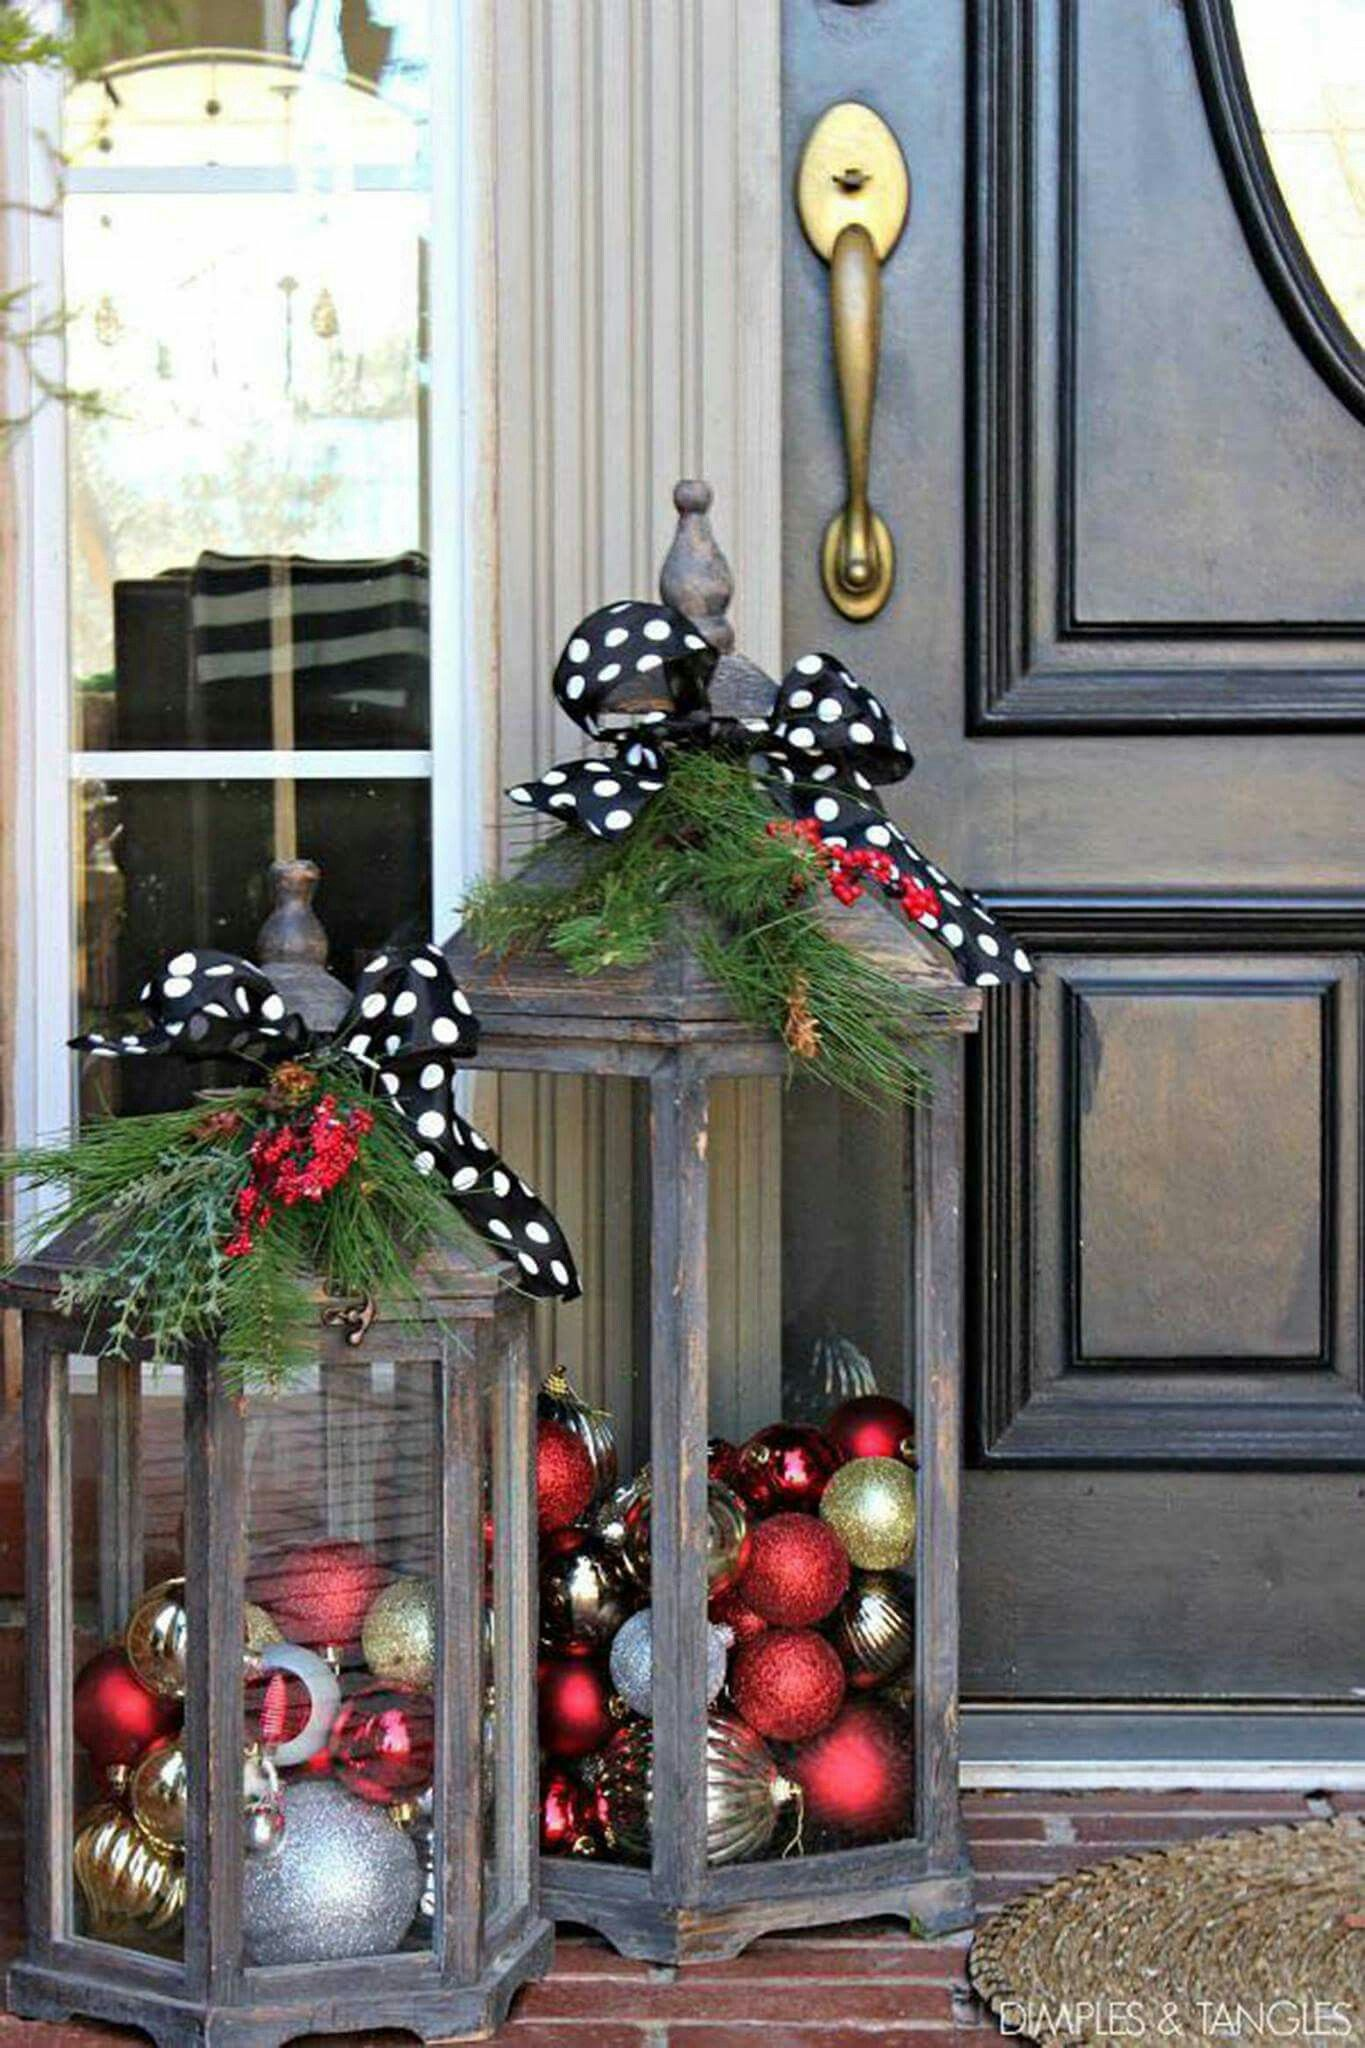 Describing beautiful christmas decorations - Beautiful Christmas Lanterns This Is Such A Great Idea For A Christmas Decoration